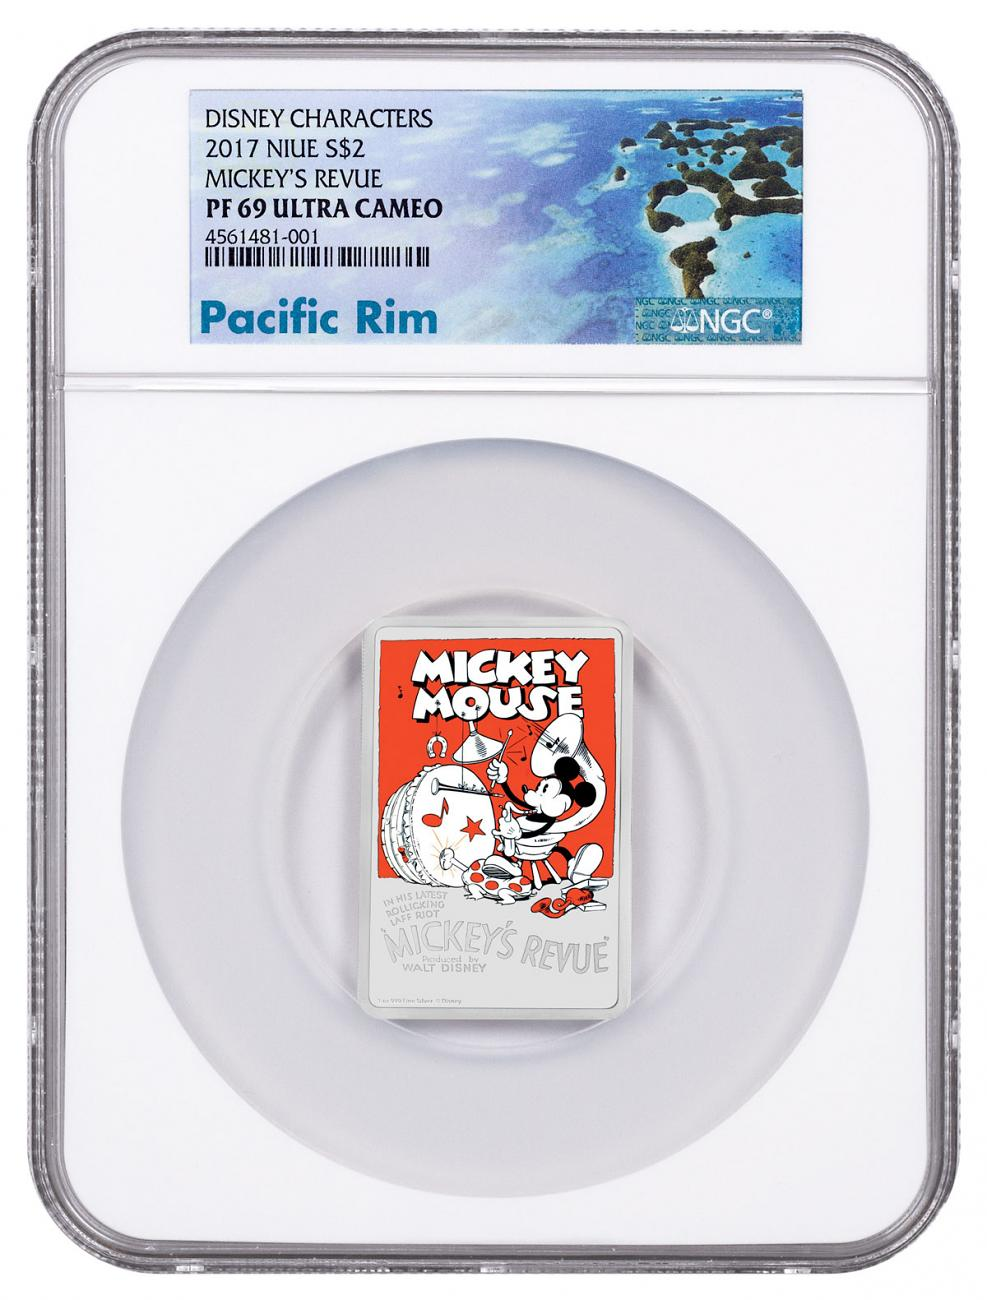 2017 Niue Disney Posters of the 1930s - Mickey's Revue Rectangle 1 oz Silver Colorized Proof $2 Coin NGC PF69 UC Exclusive Pacific Rim Label